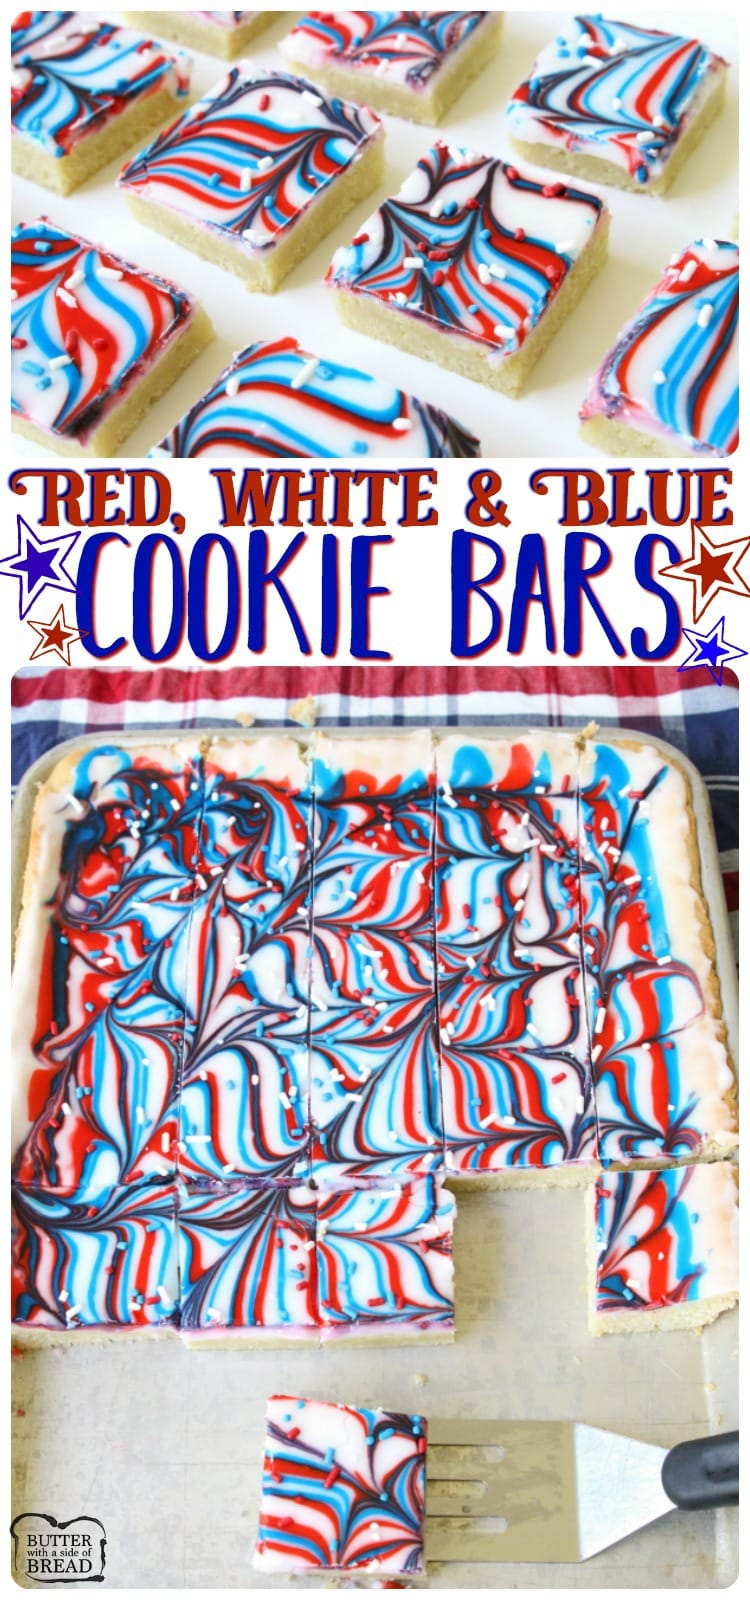 EASY & Fun Patriotic Cookie Bars recipe made with swirled red, white & blue icing making them perfectly festive! Easy sugar cookie bar recipe for 4th of July & Memorial Day from Butter With A Side of Bread.